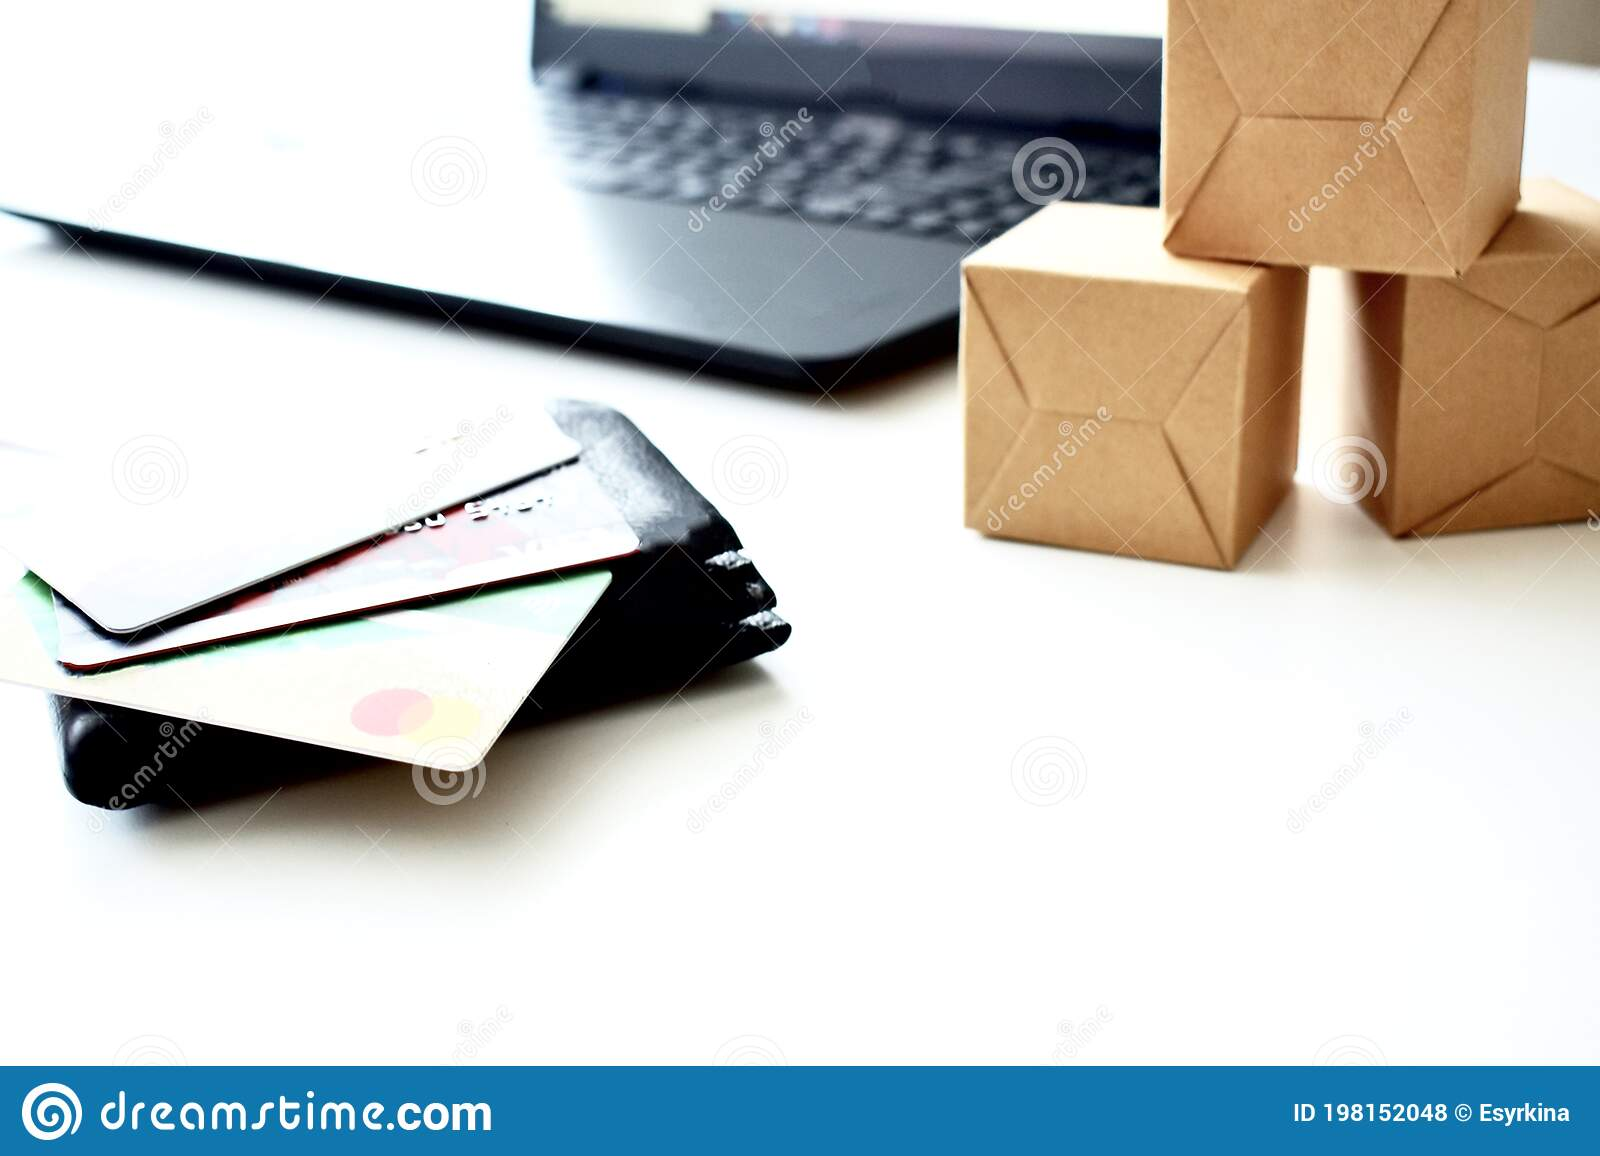 Boxes of credit cards